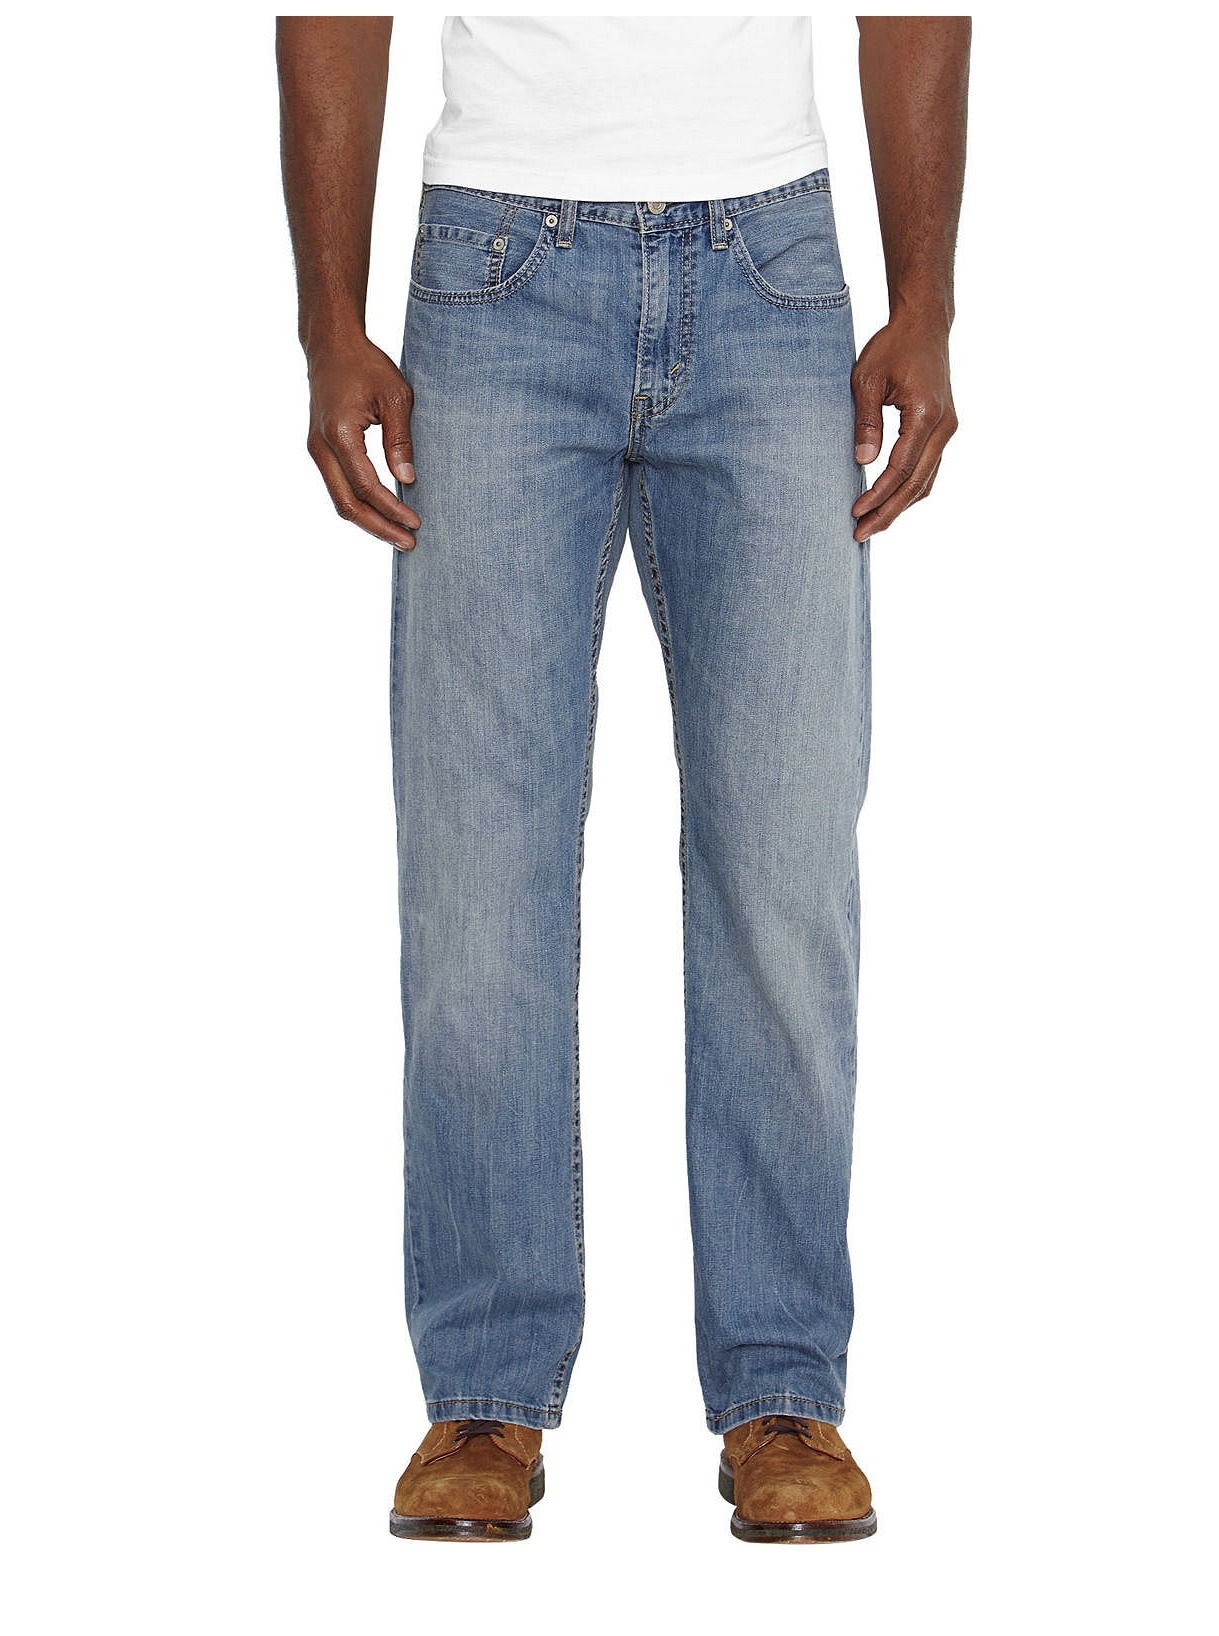 4914558e Details about Levi's NEW Blue Mens Size 52x30 559 Relaxed-Fit Straight Leg  Jeans $69- 795